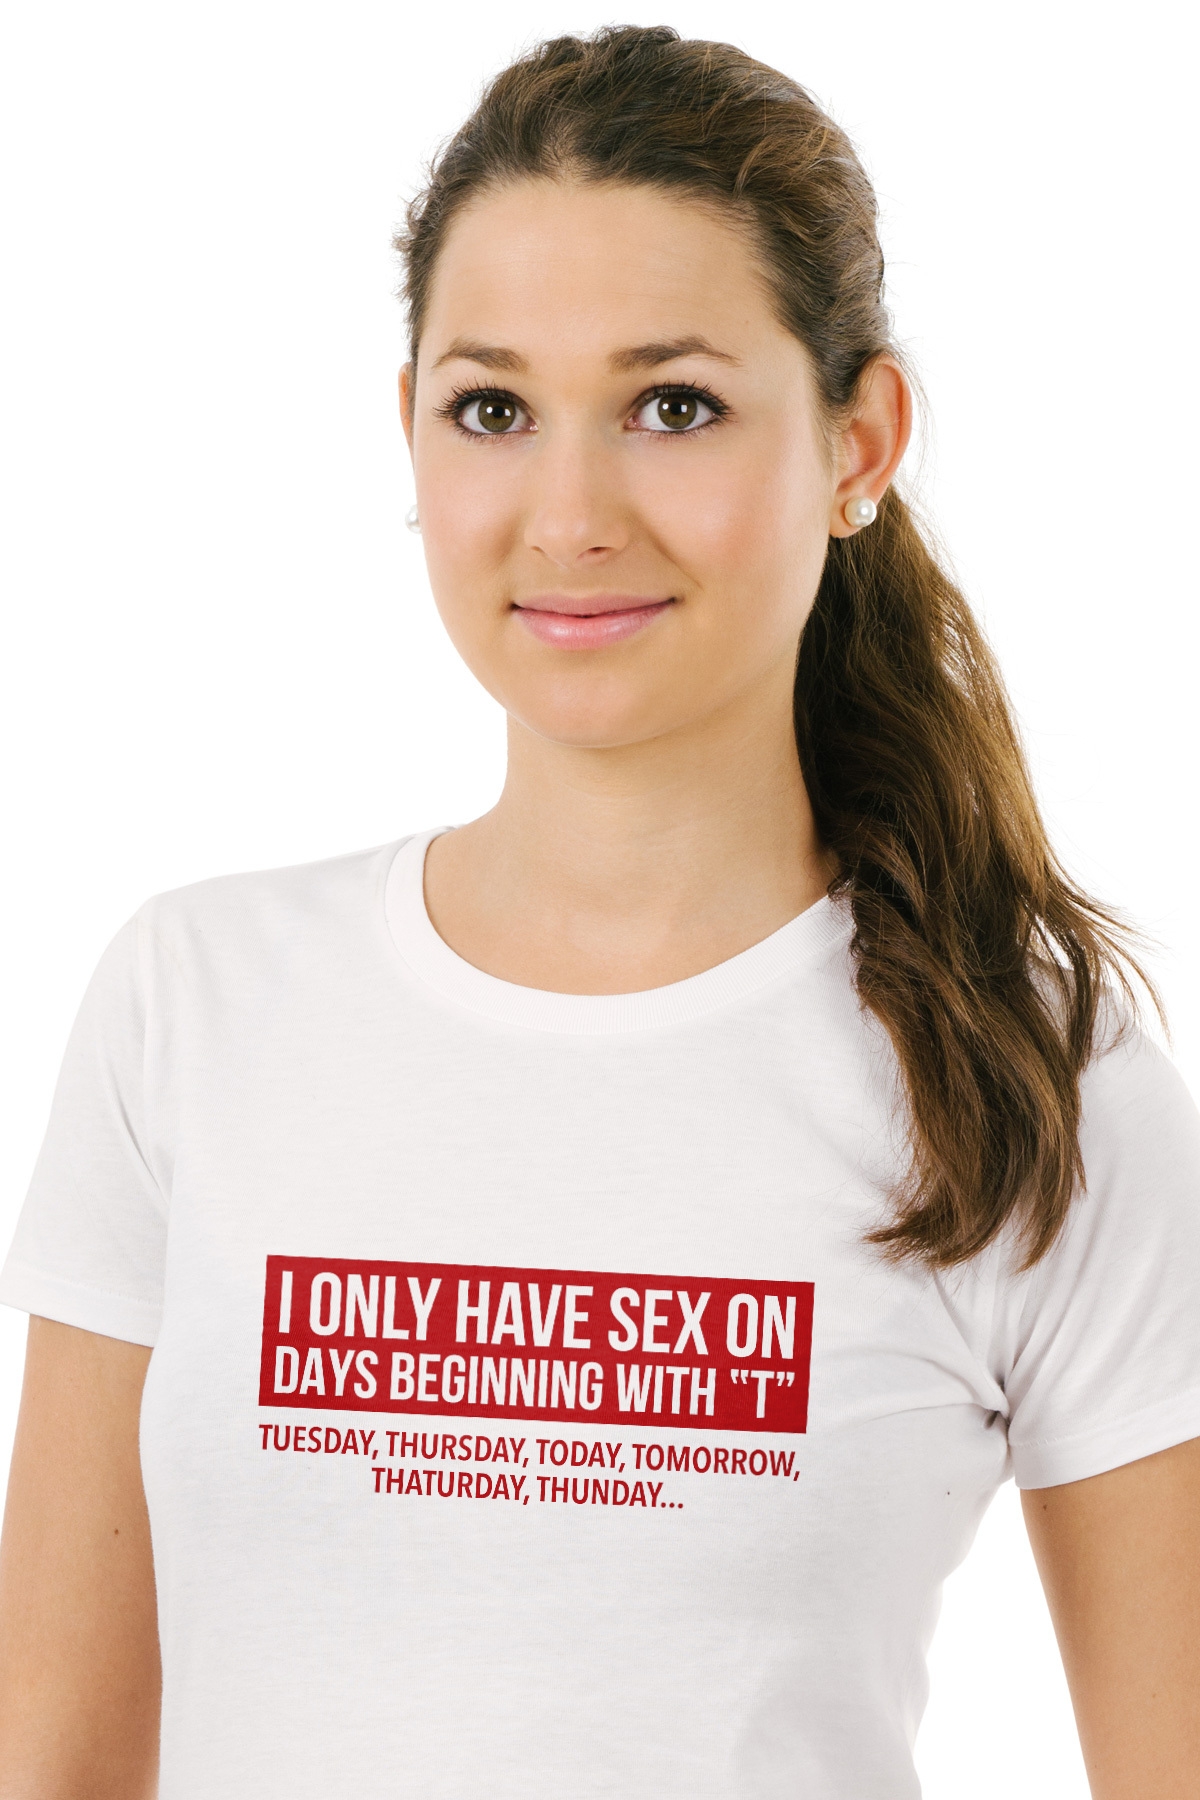 fa354ca3bb I only have sex on days begining T - Funny T-Shirt